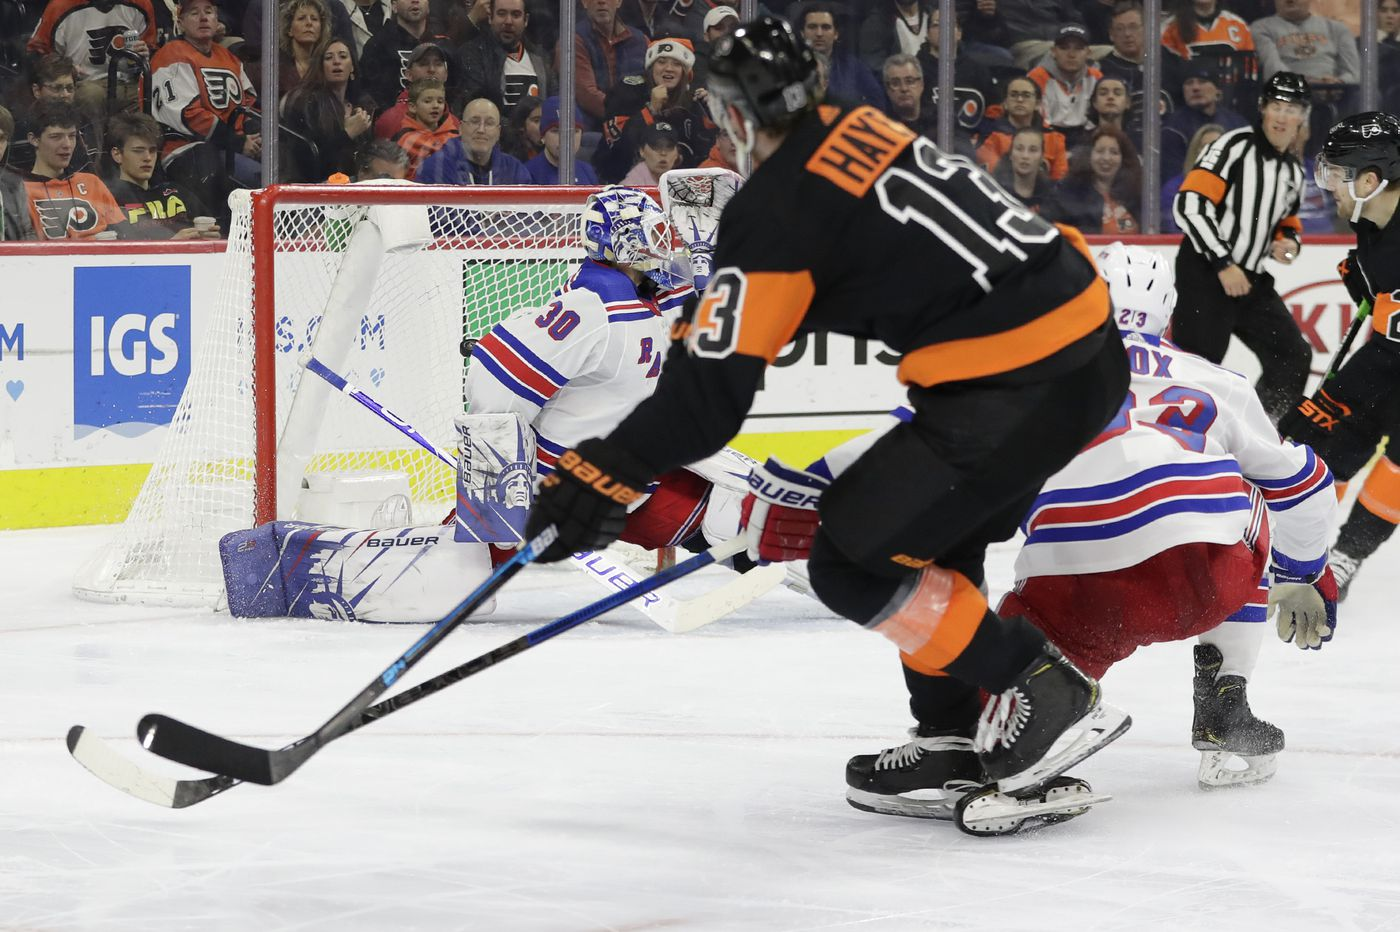 Flyers center Kevin Hayes turns some fans' outrage into outpouring of admiration | On the Fly